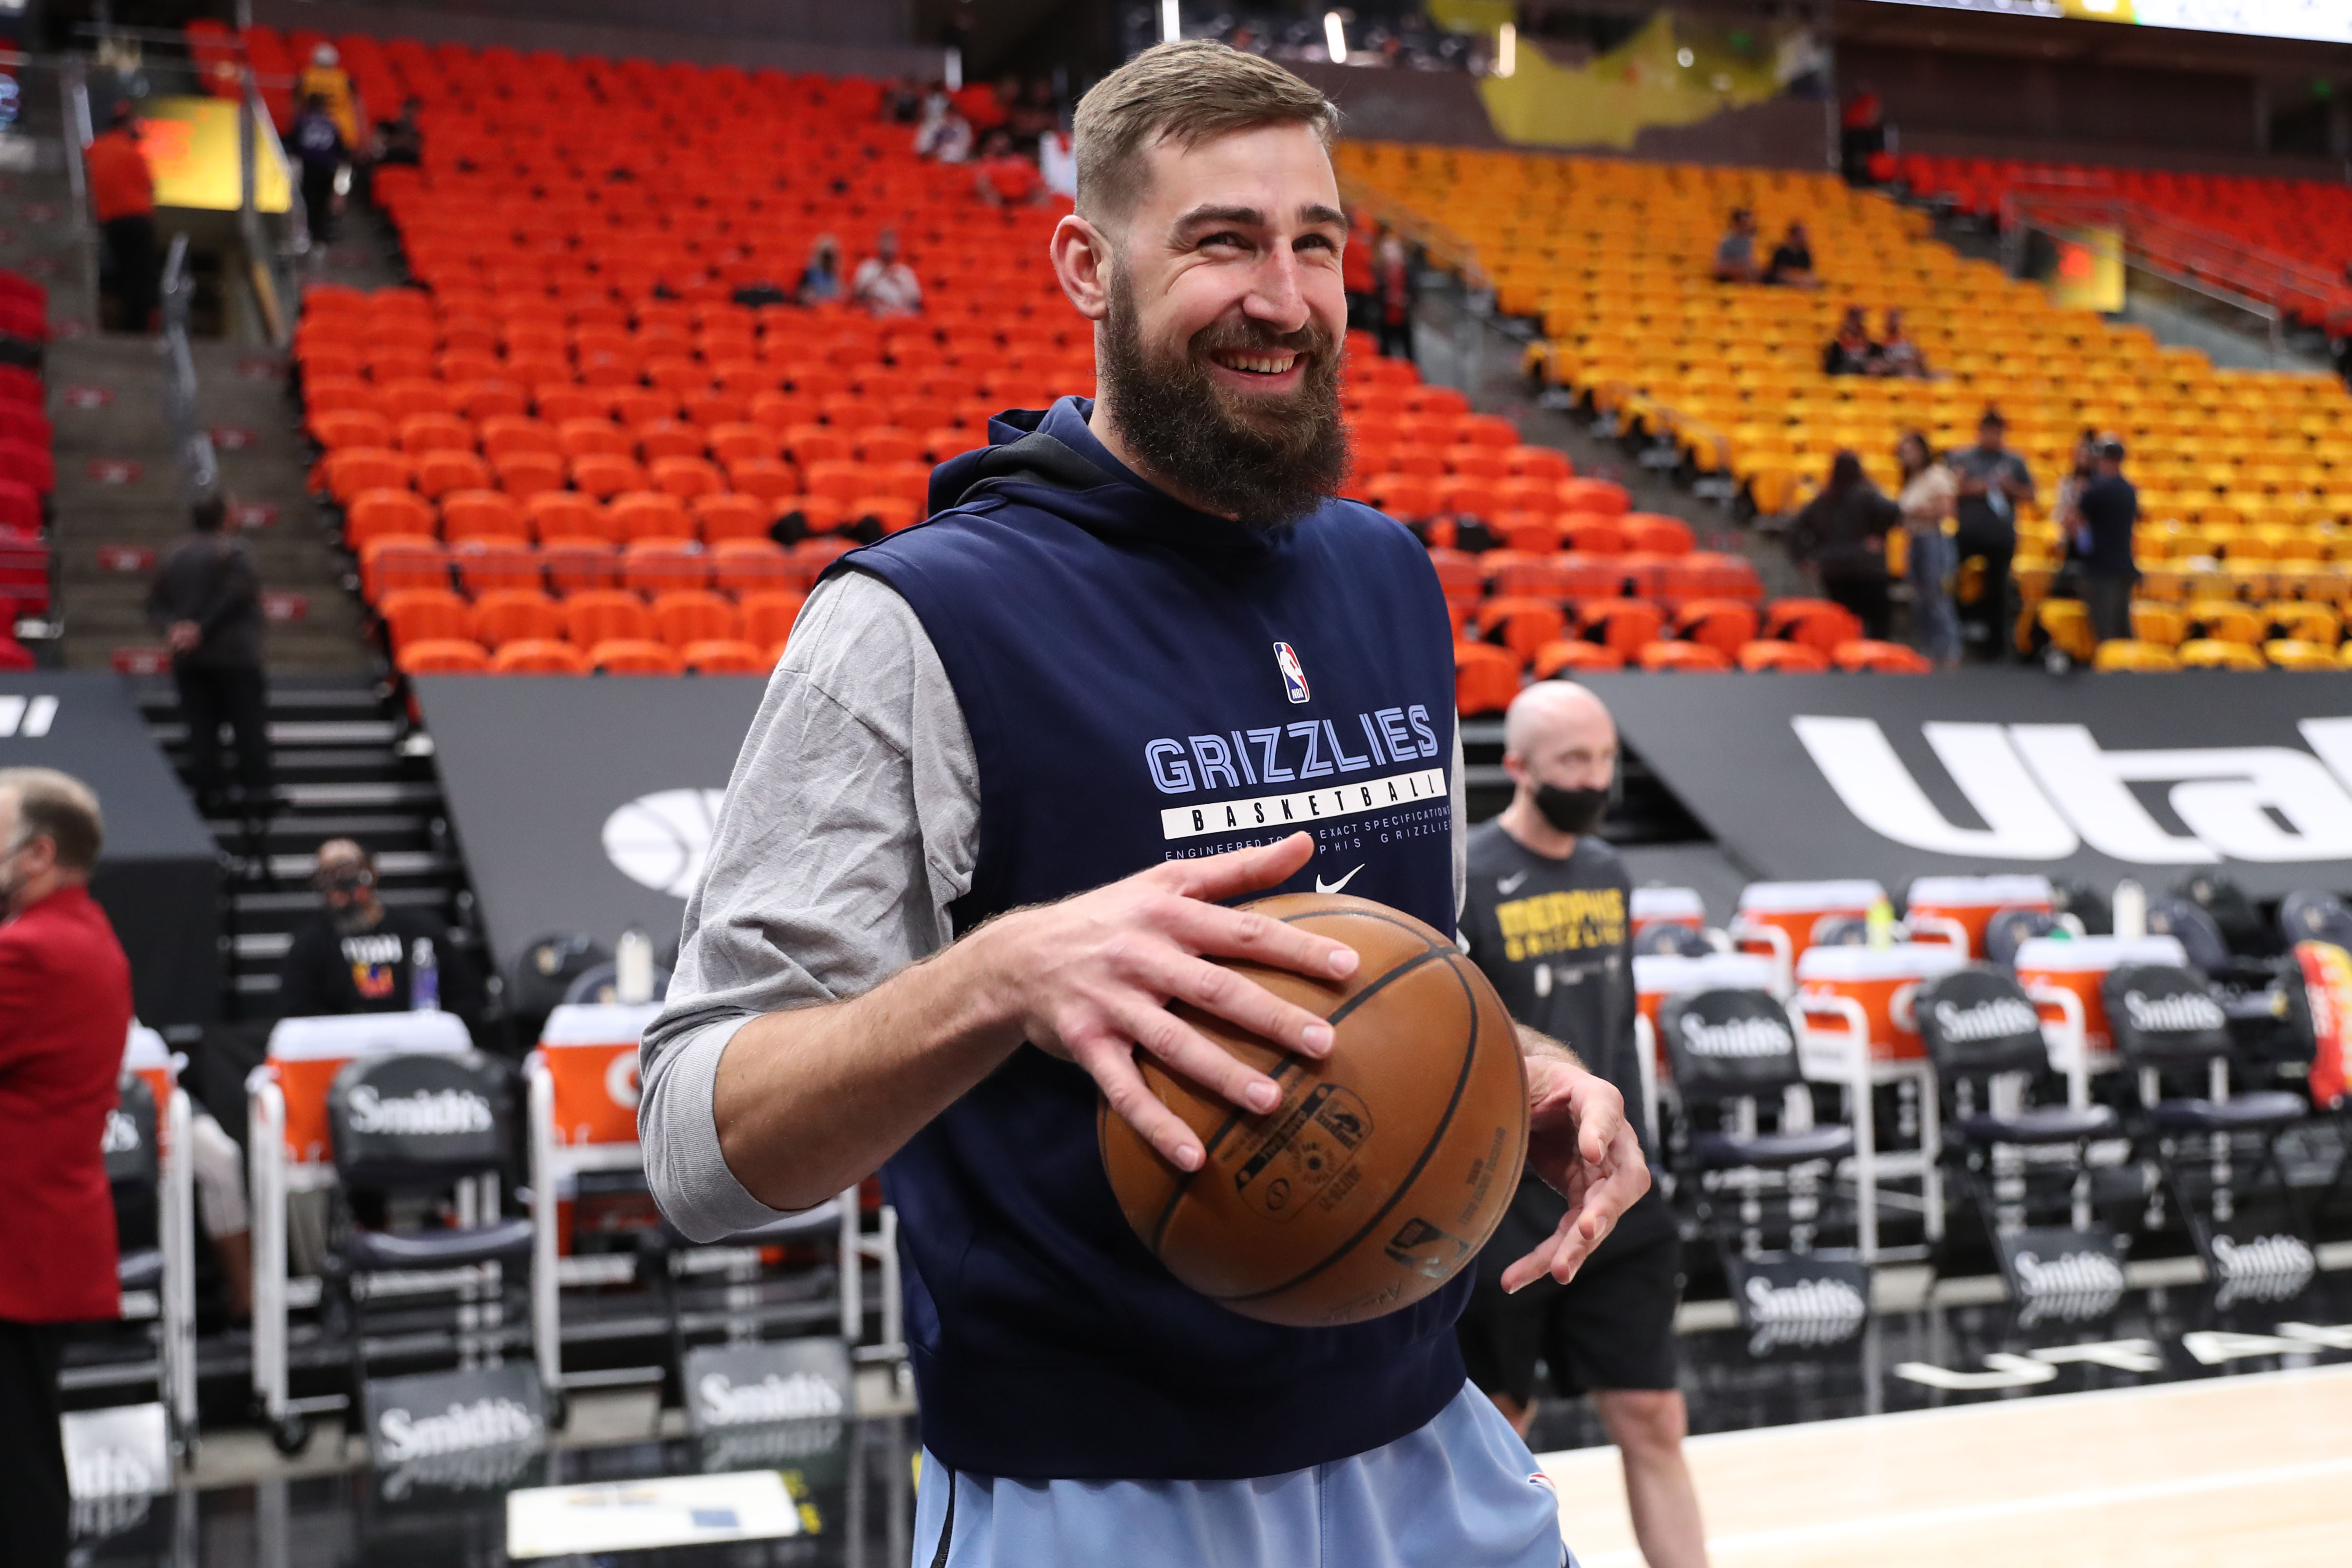 Jonas Valanciunas #17 of the Memphis Grizzlies smiles before the game against the Utah Jazz during Round 1, Game 5 of the 2021 NBA Playoffs on June 2, 2021 at vivint.SmartHome Arena in Salt Lake City, Utah.